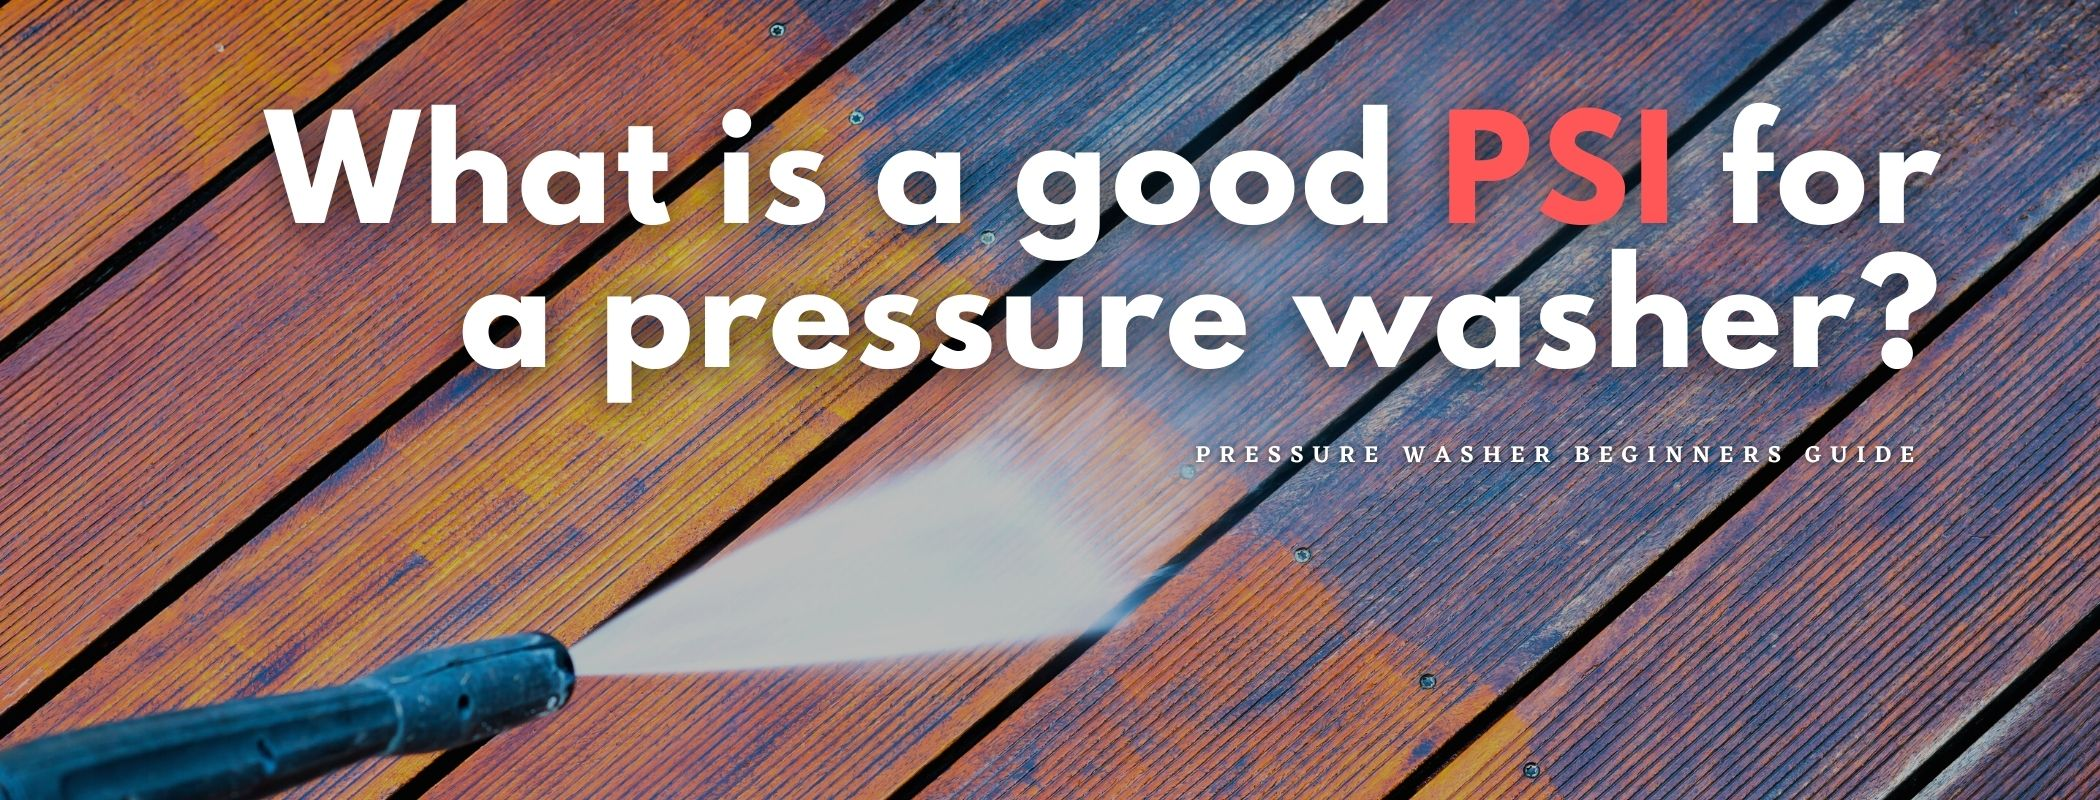 What Is a Good PSI for a Pressure Washer (1)